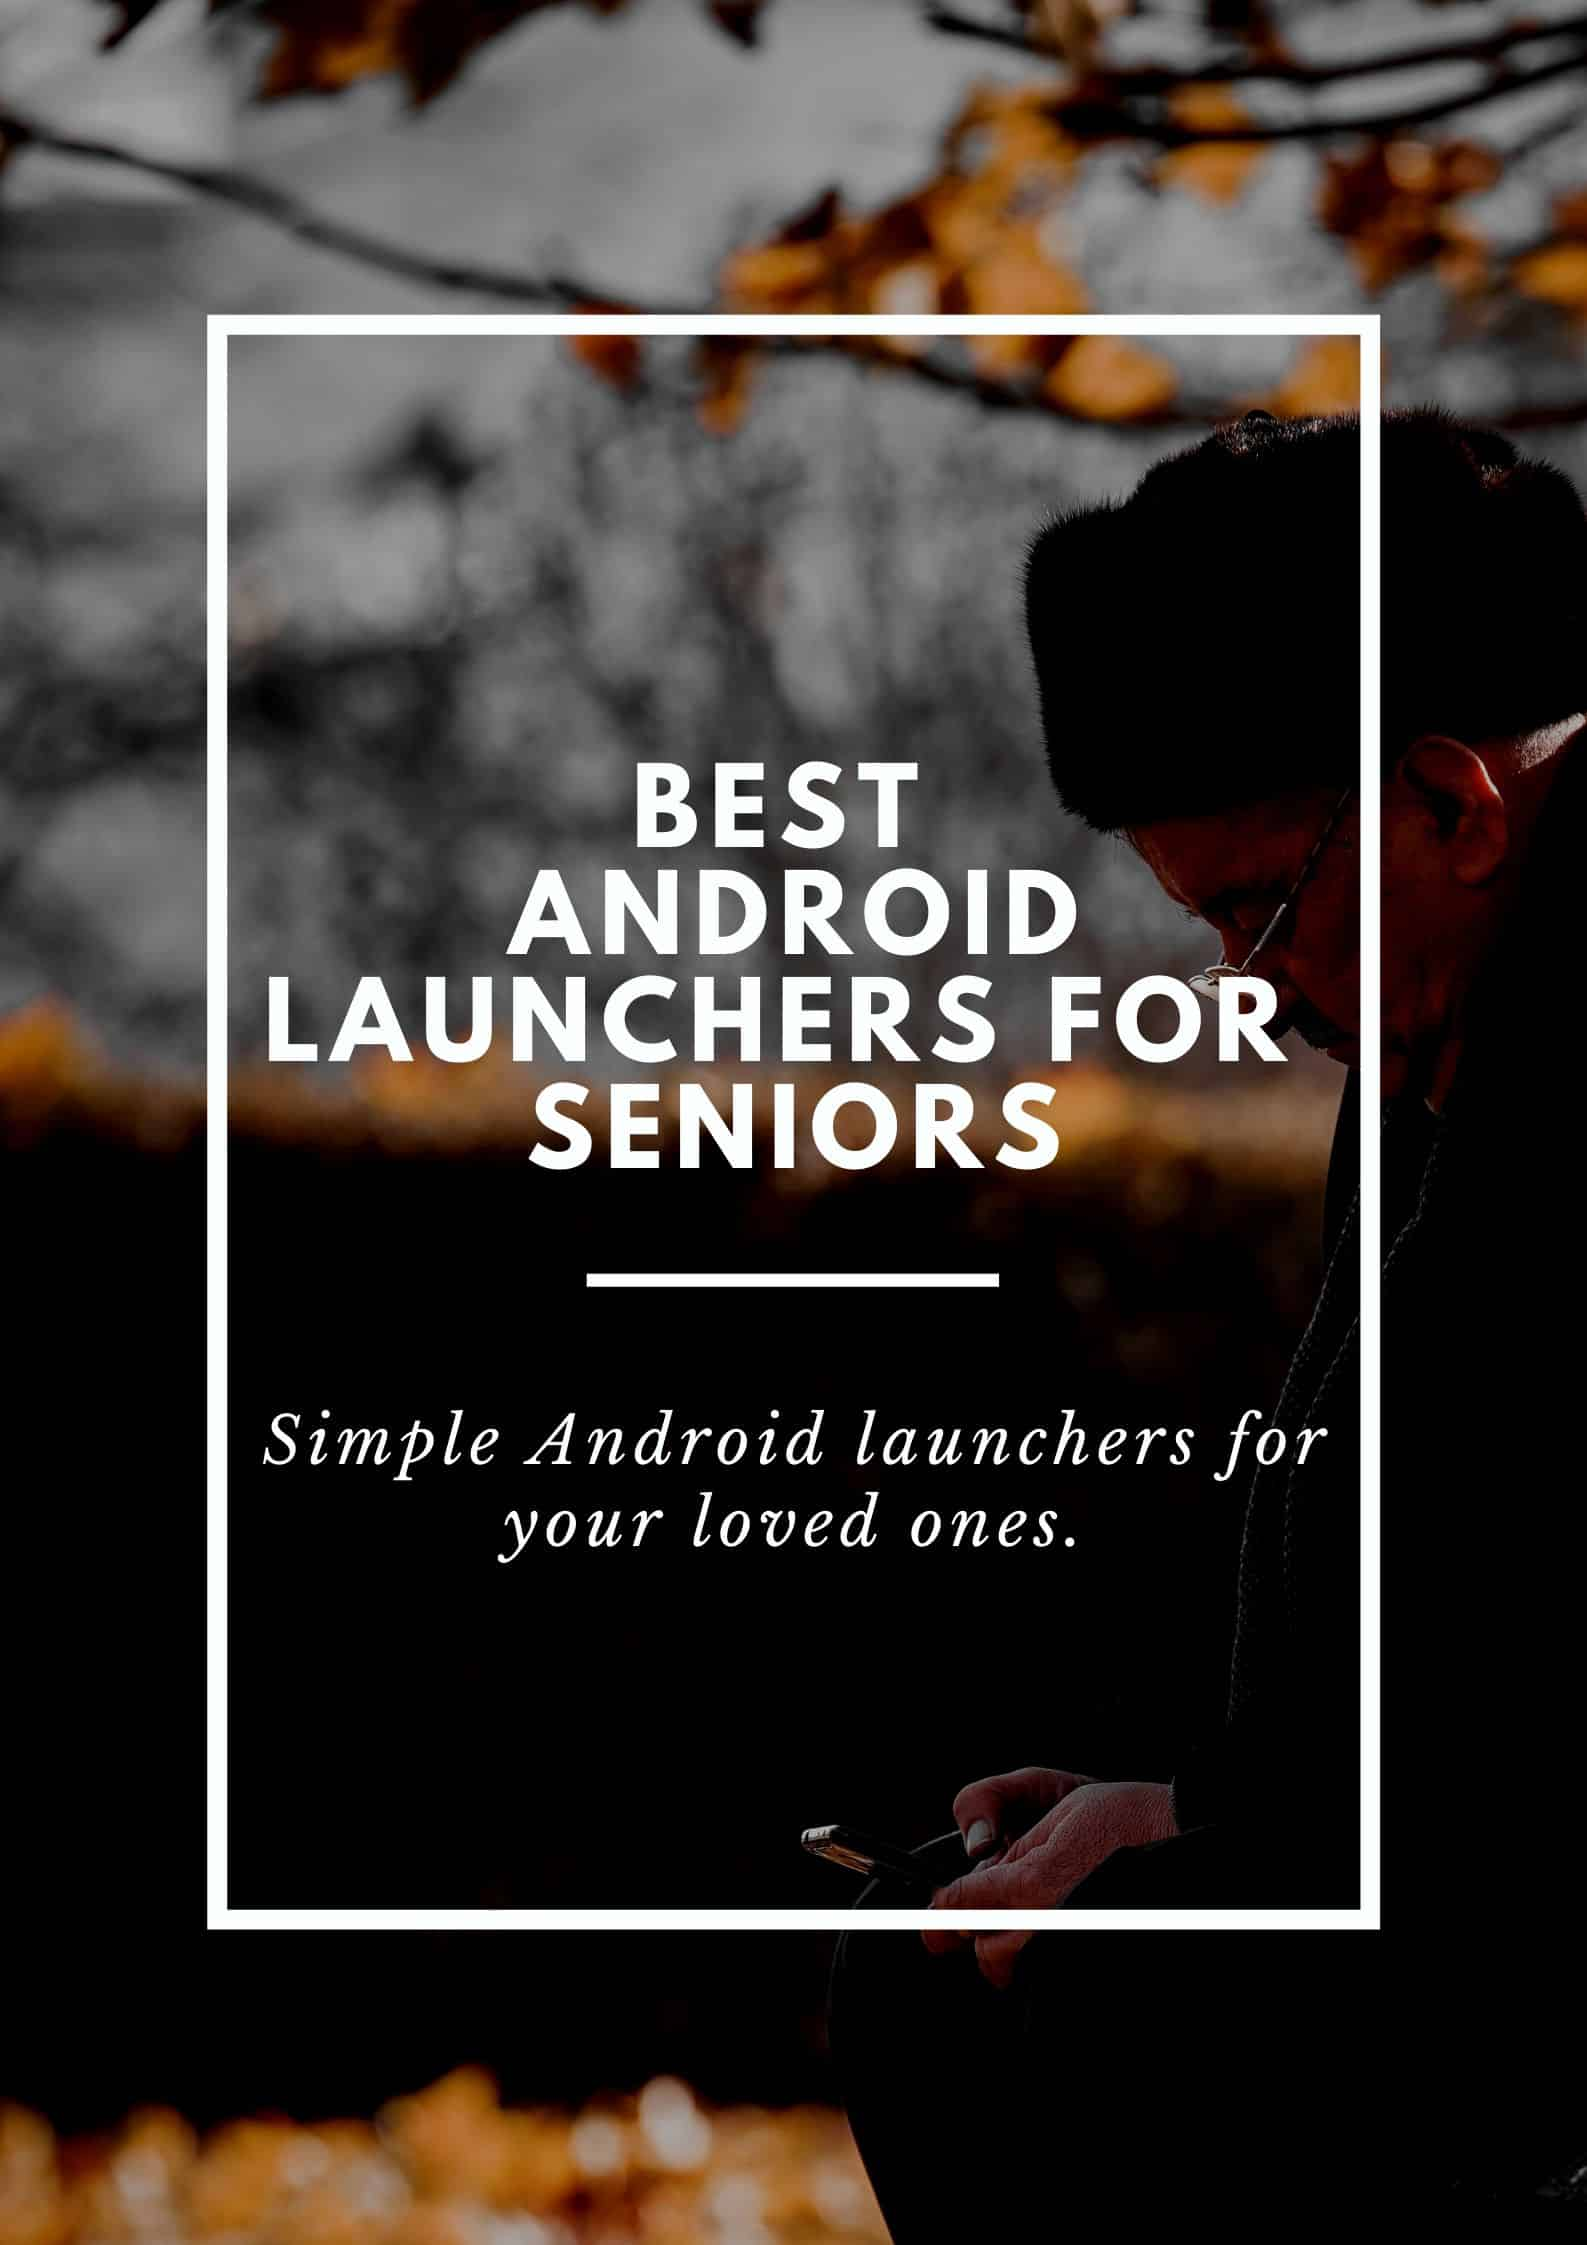 Best Android Launcher for Seniors - First Image